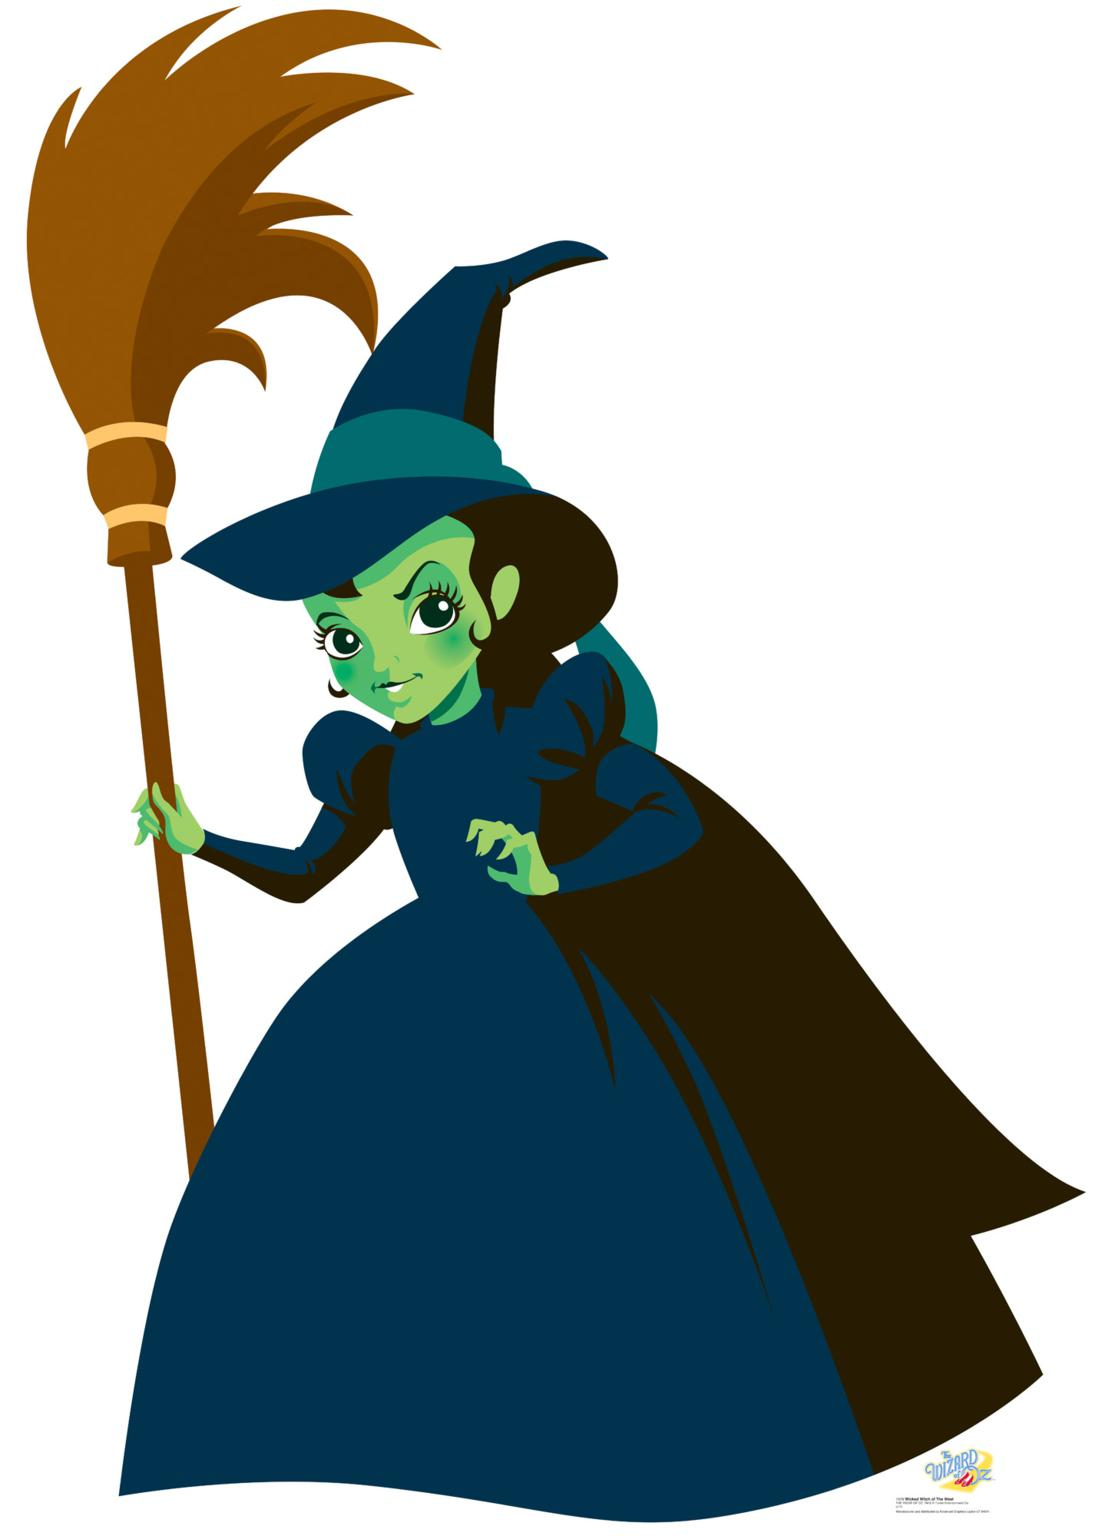 Free wizard cliparts download. Witch clipart wizards